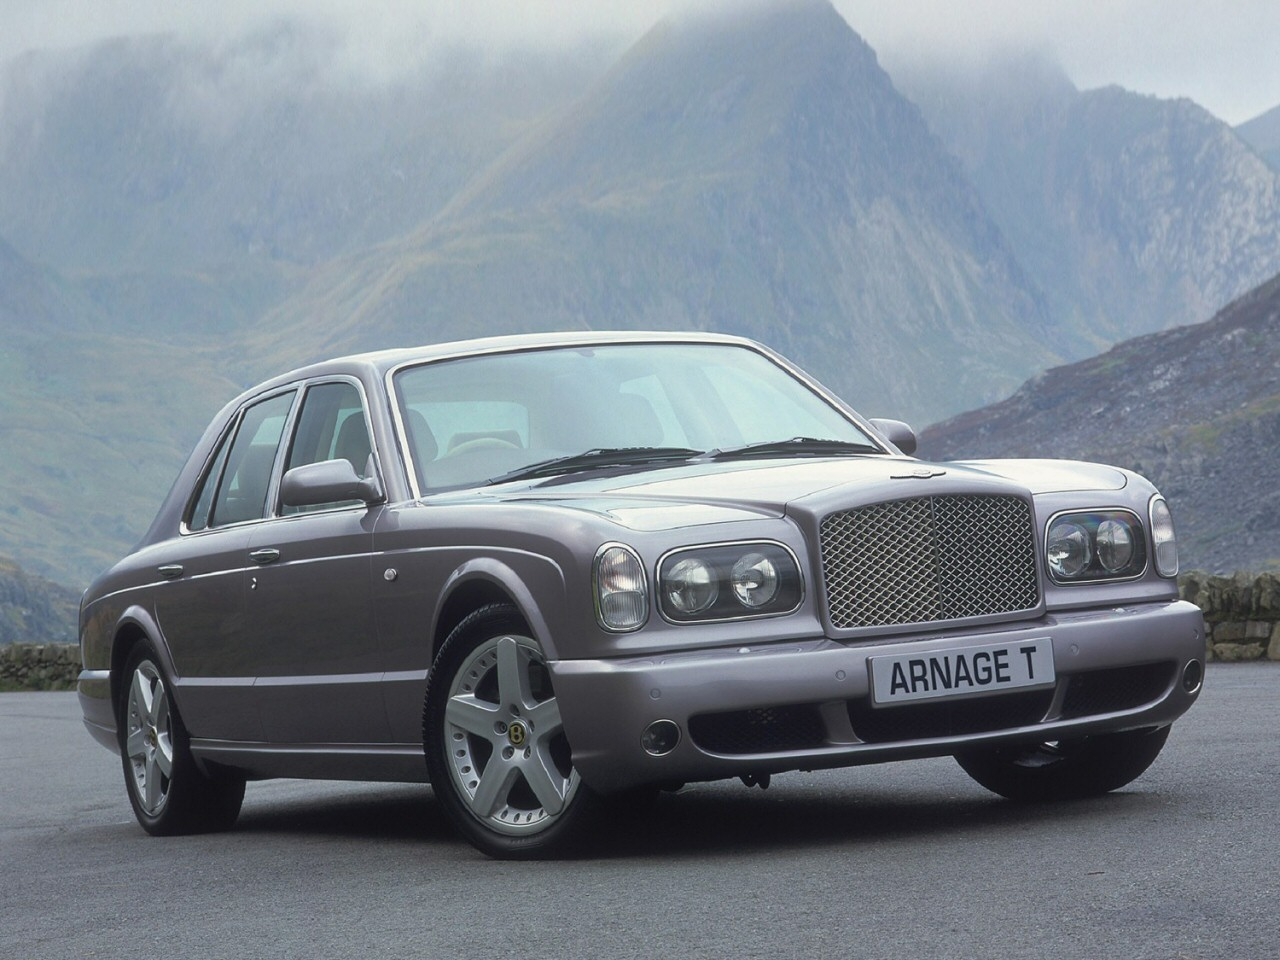 Pictures of bentley arnage i 2002 #1